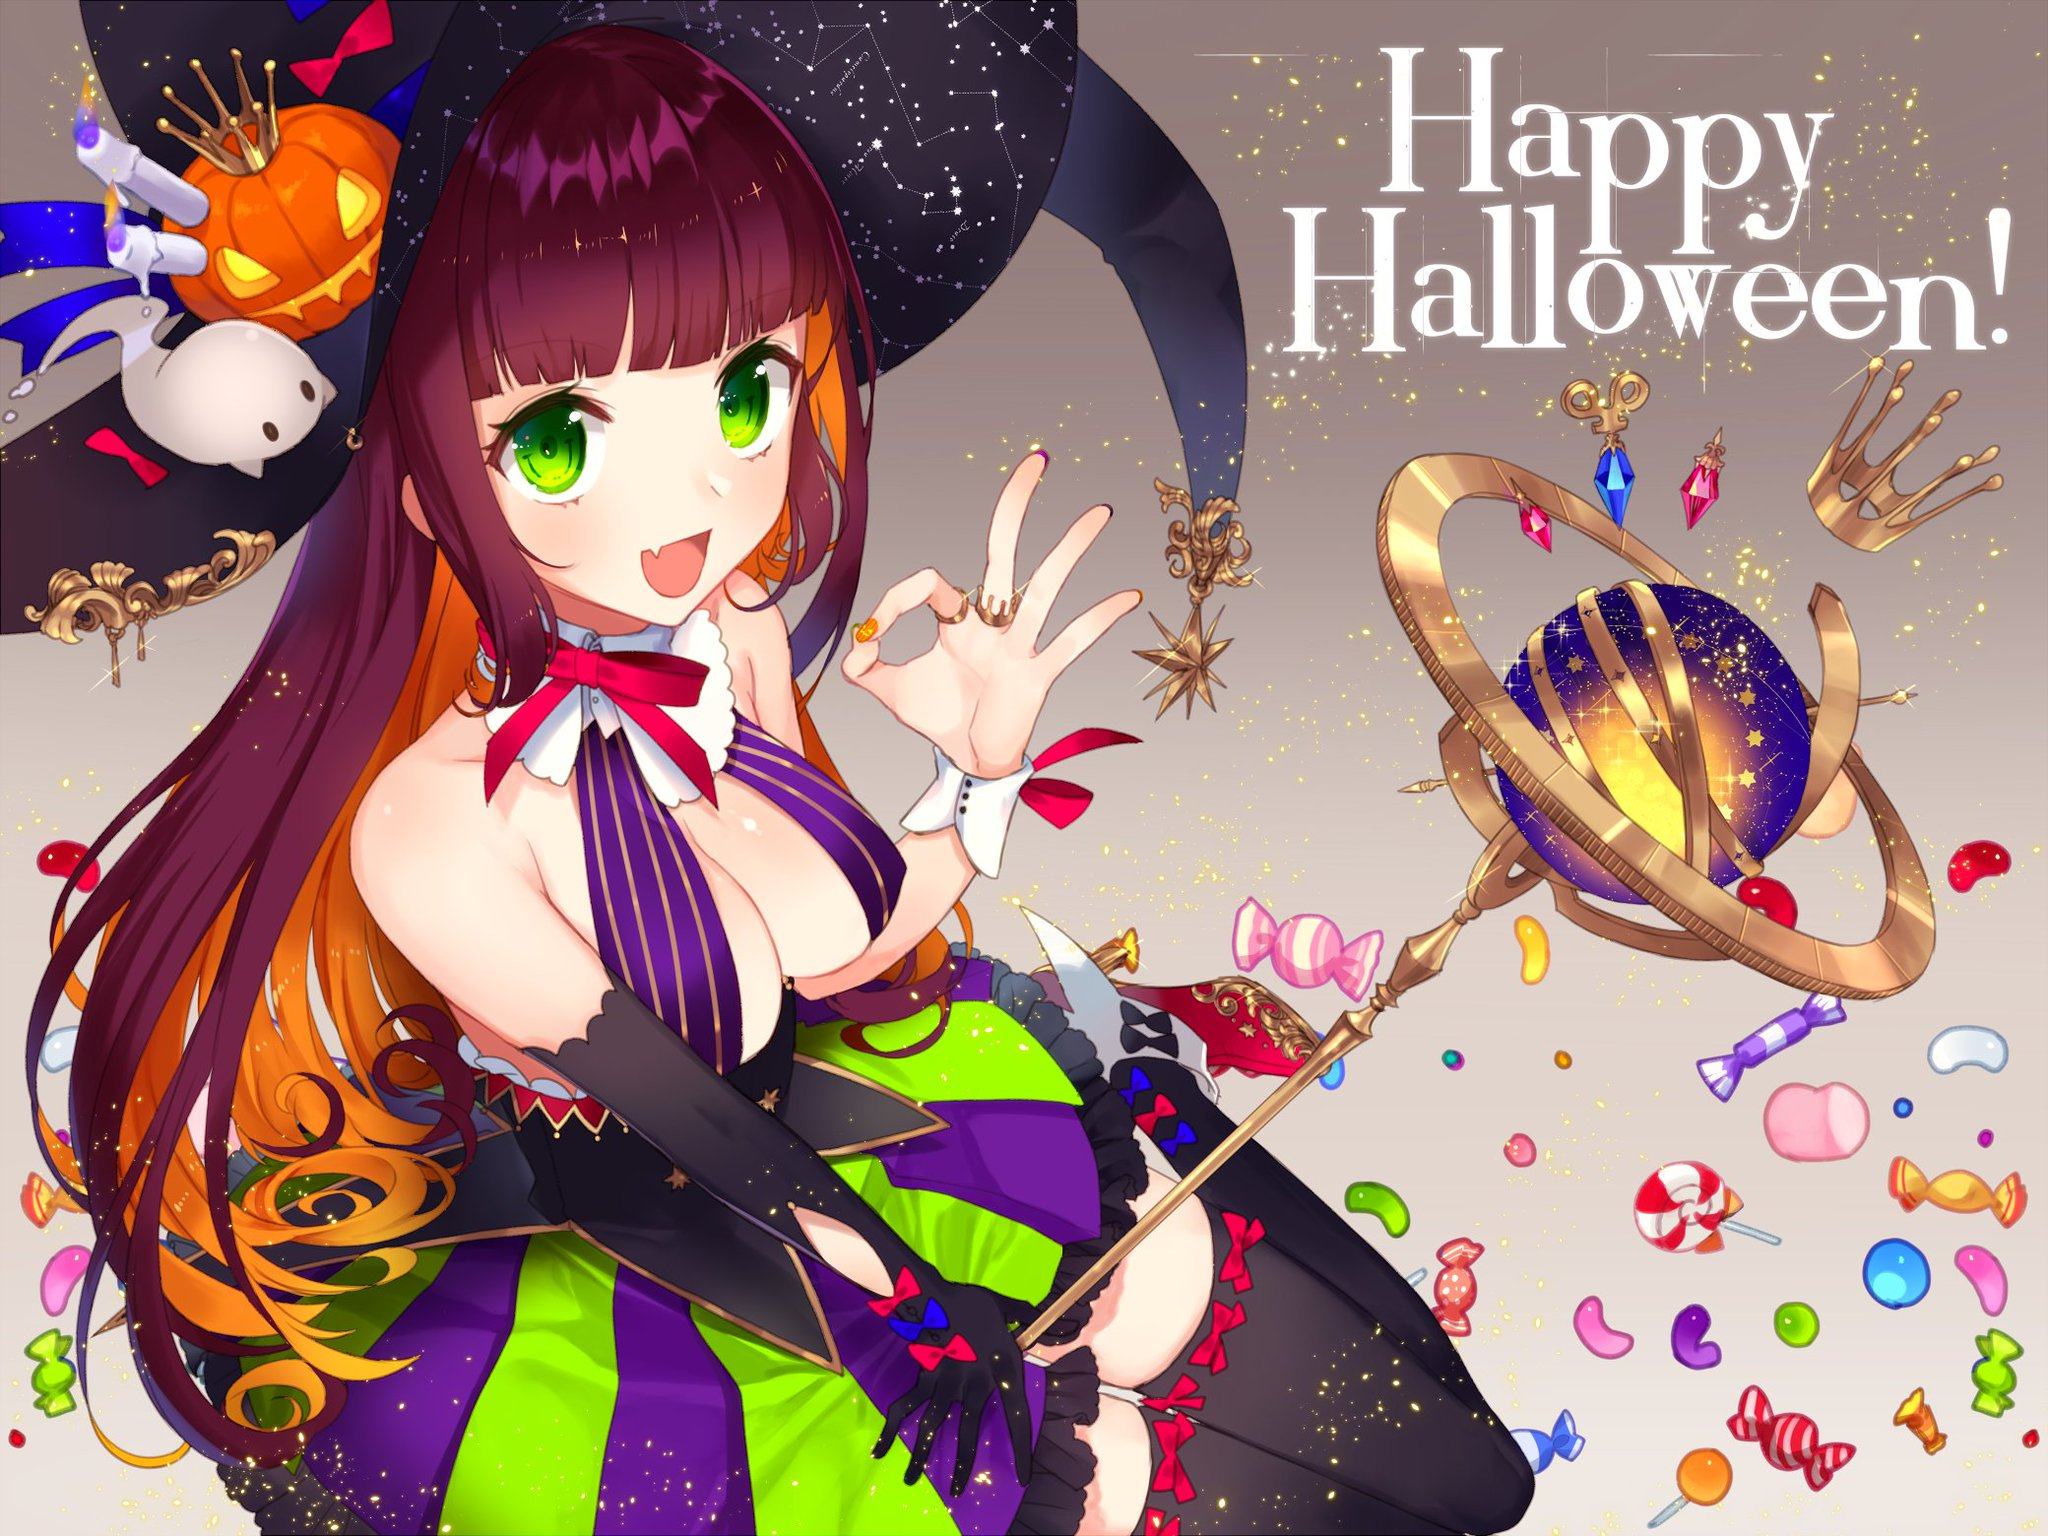 Trick or Treat!(ド遅刻) https://t.co/1Jjh9oEdTw